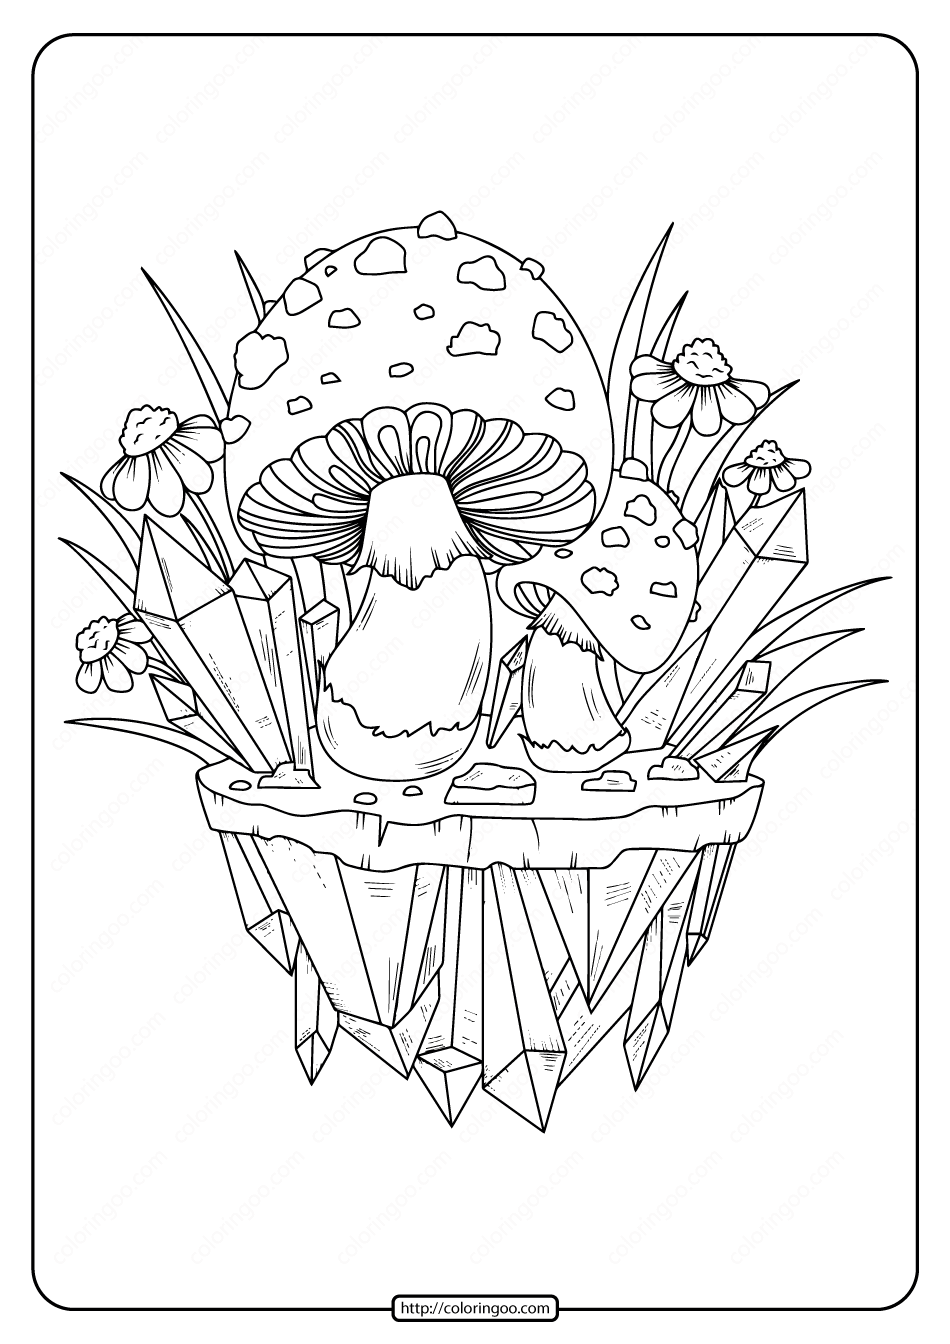 coloring sheet for adults adult free fish coloring pages realistic coloring pages adults for coloring sheet